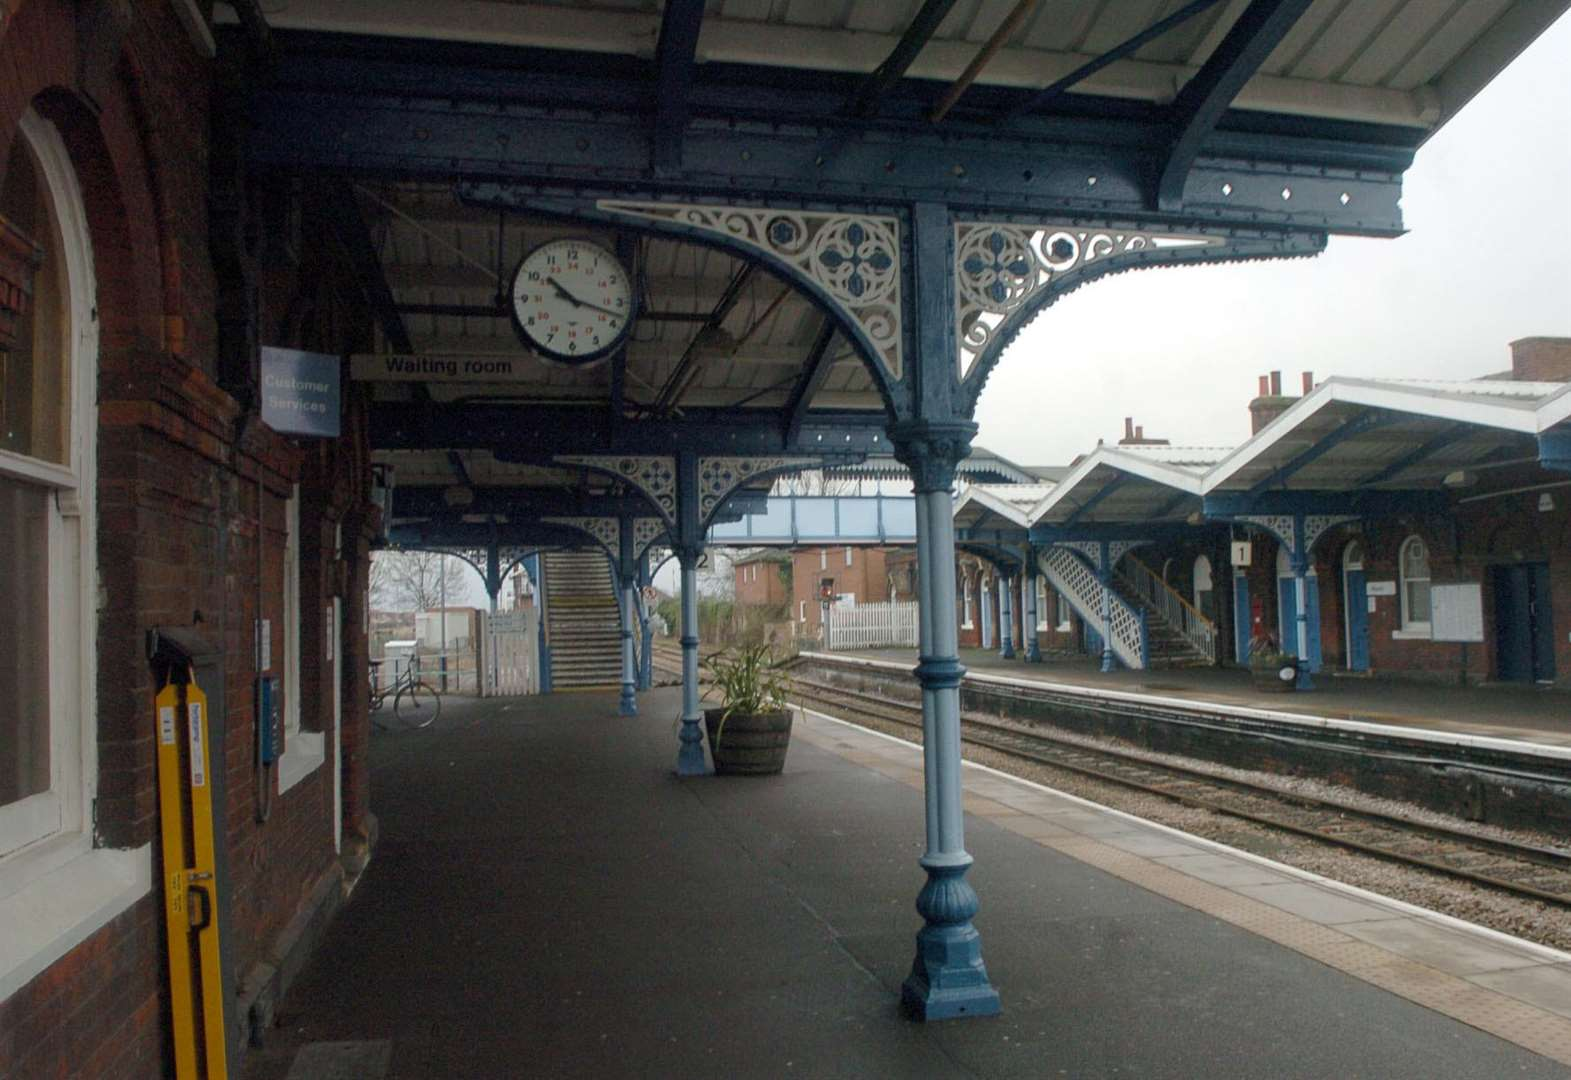 Delays to train services between March, Peterborough and Ipswich